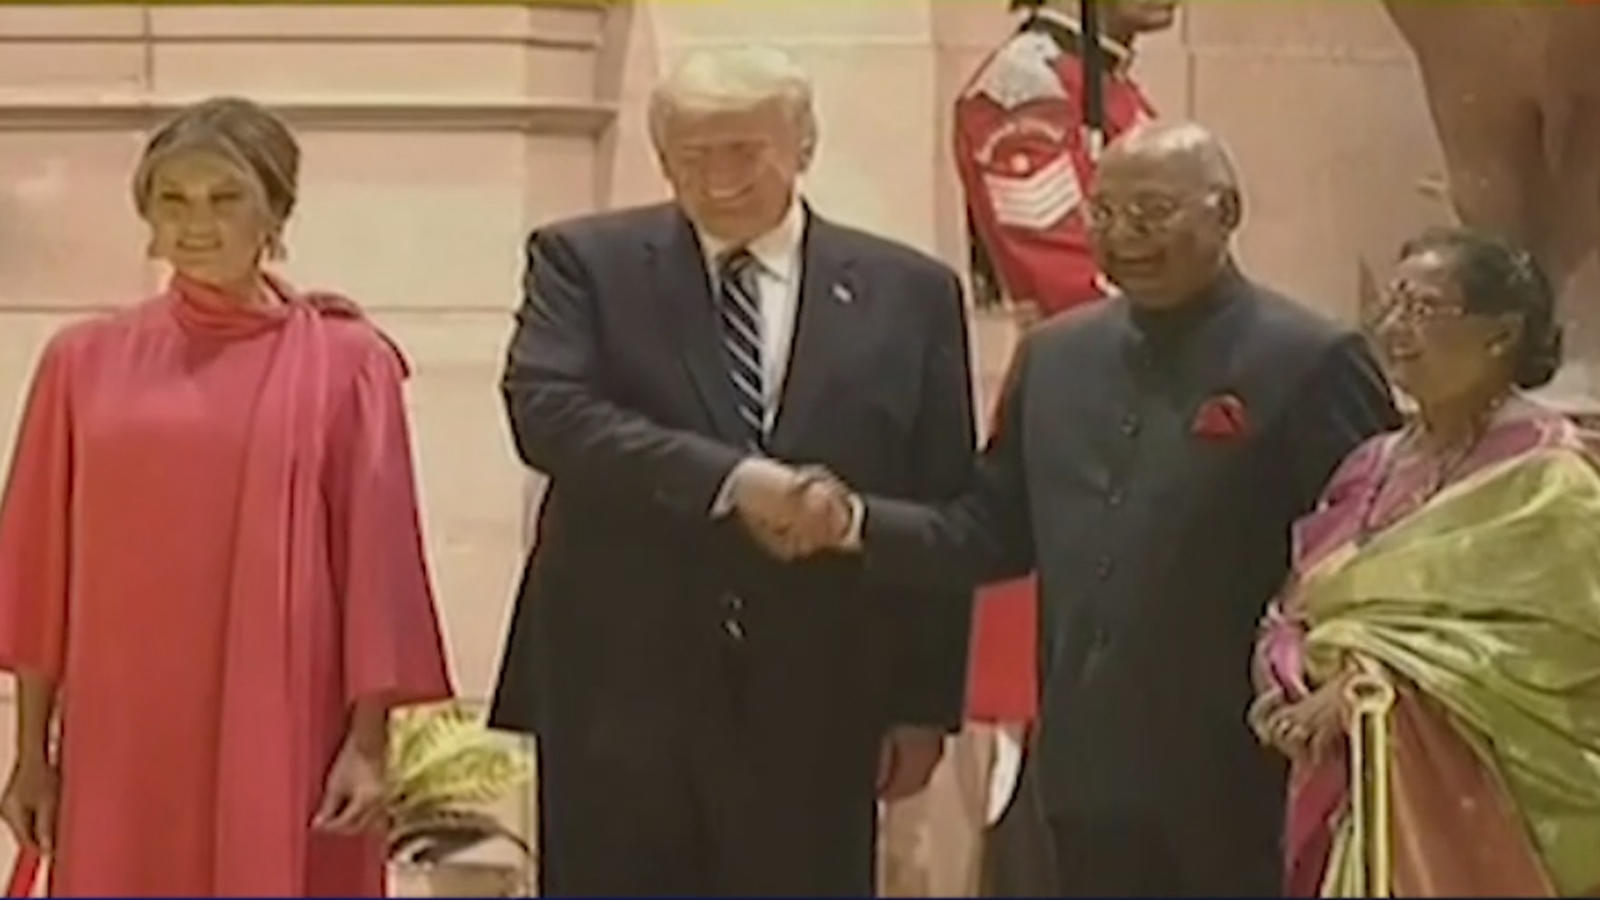 namaste-trump-us-president-first-lady-at-rashtrapati-bhavan-for-state-banquet